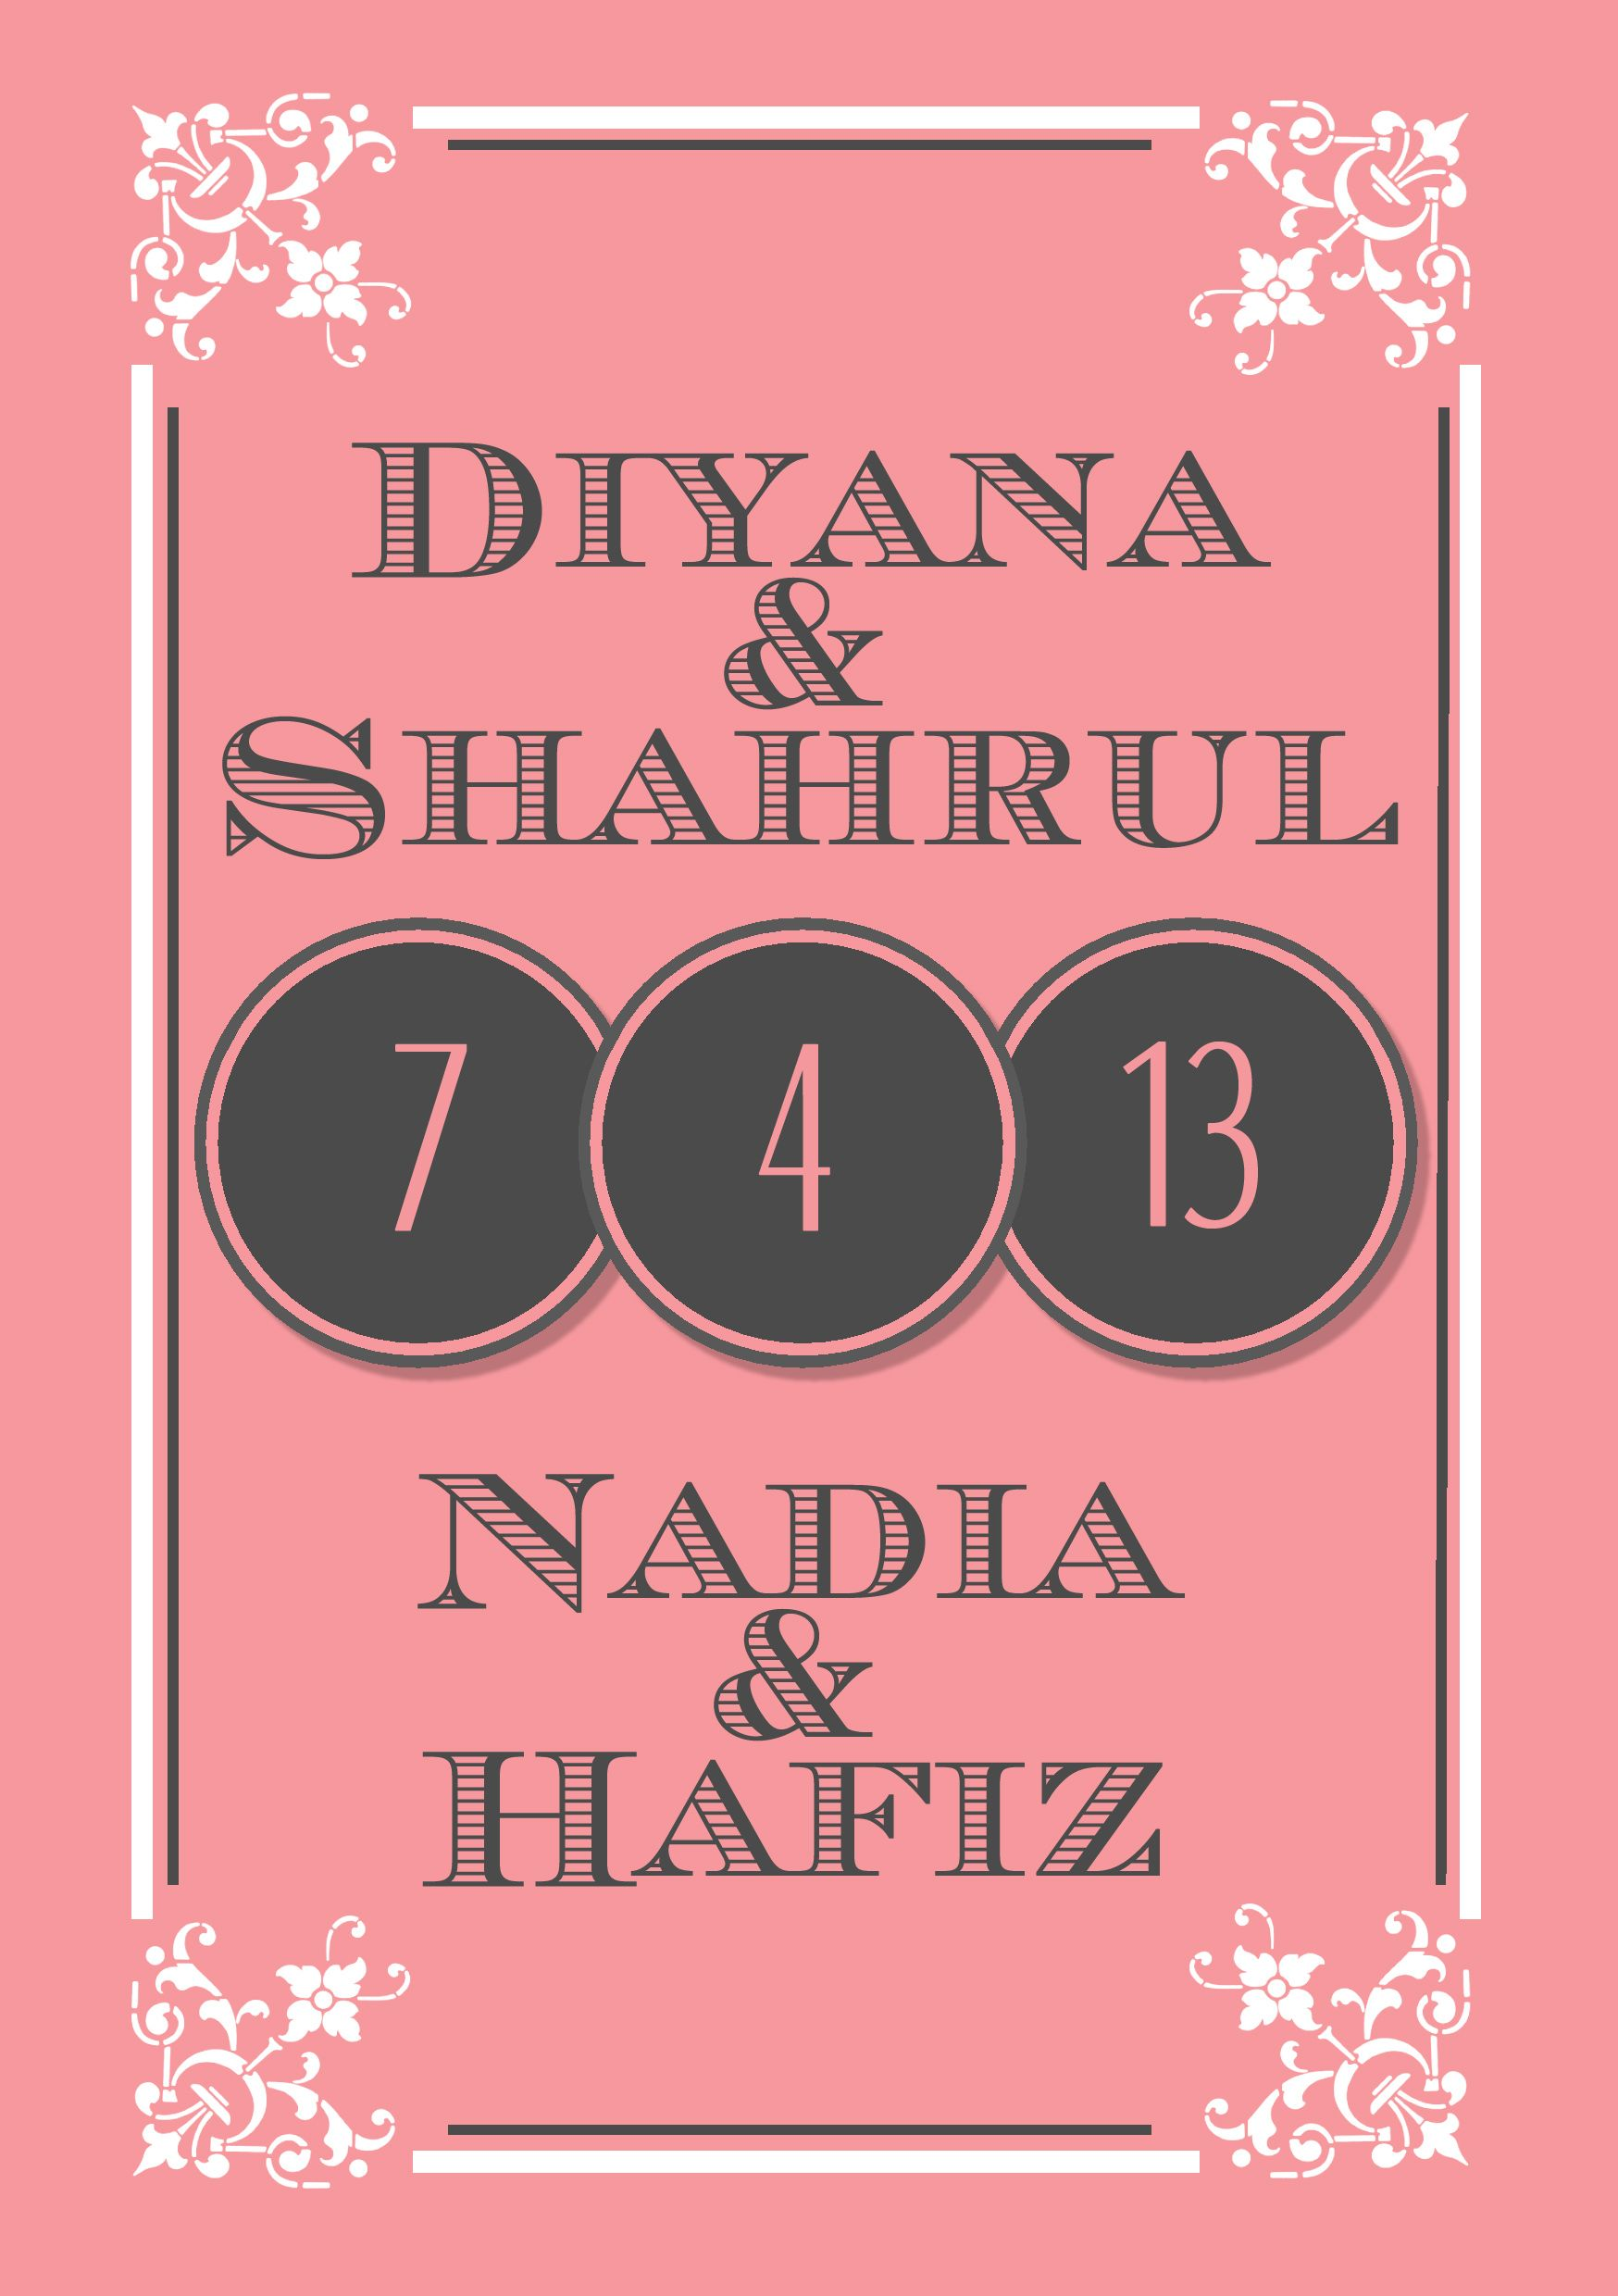 Wedding Card Design for Malay Wedding (Page 1) #nadiasuchendesigns #weddingcard #malaywedding For custom made invitation designs, contact nadiasuchen@gmail. ...